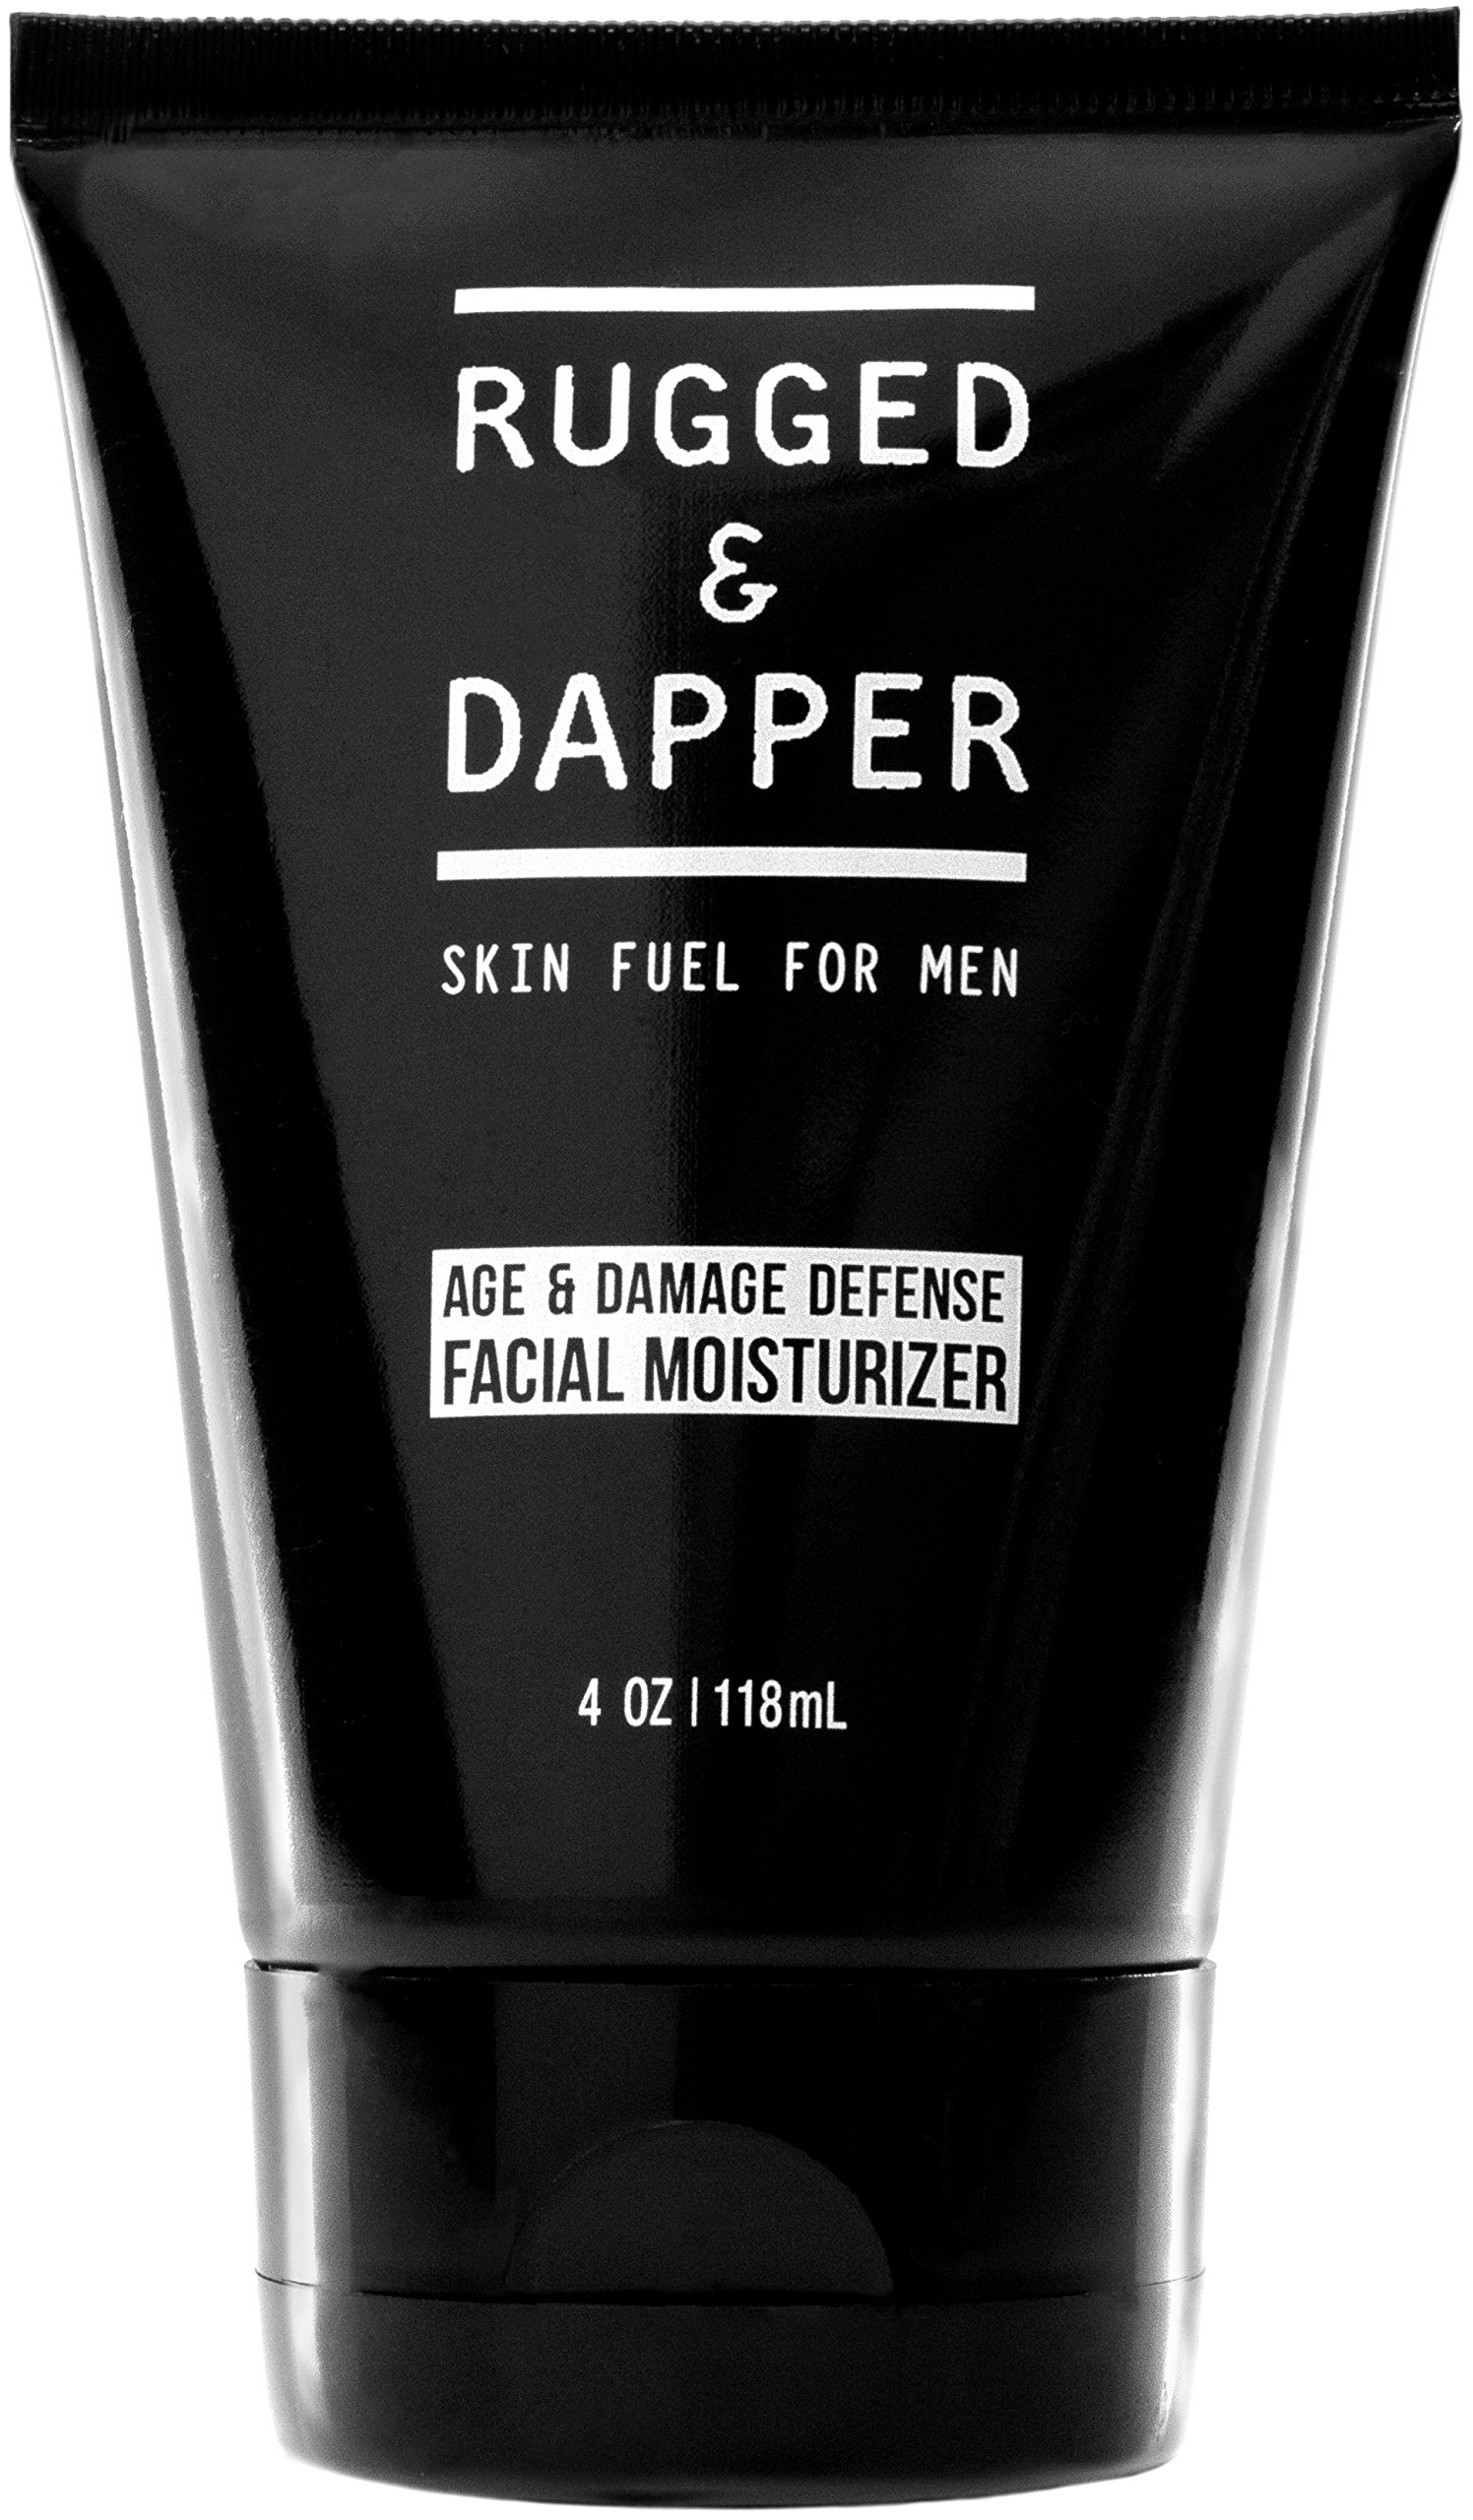 RUGGED & DAPPER Age Defense Face Moisturizer for Men, 4 Oz by RUGGED & DAPPER